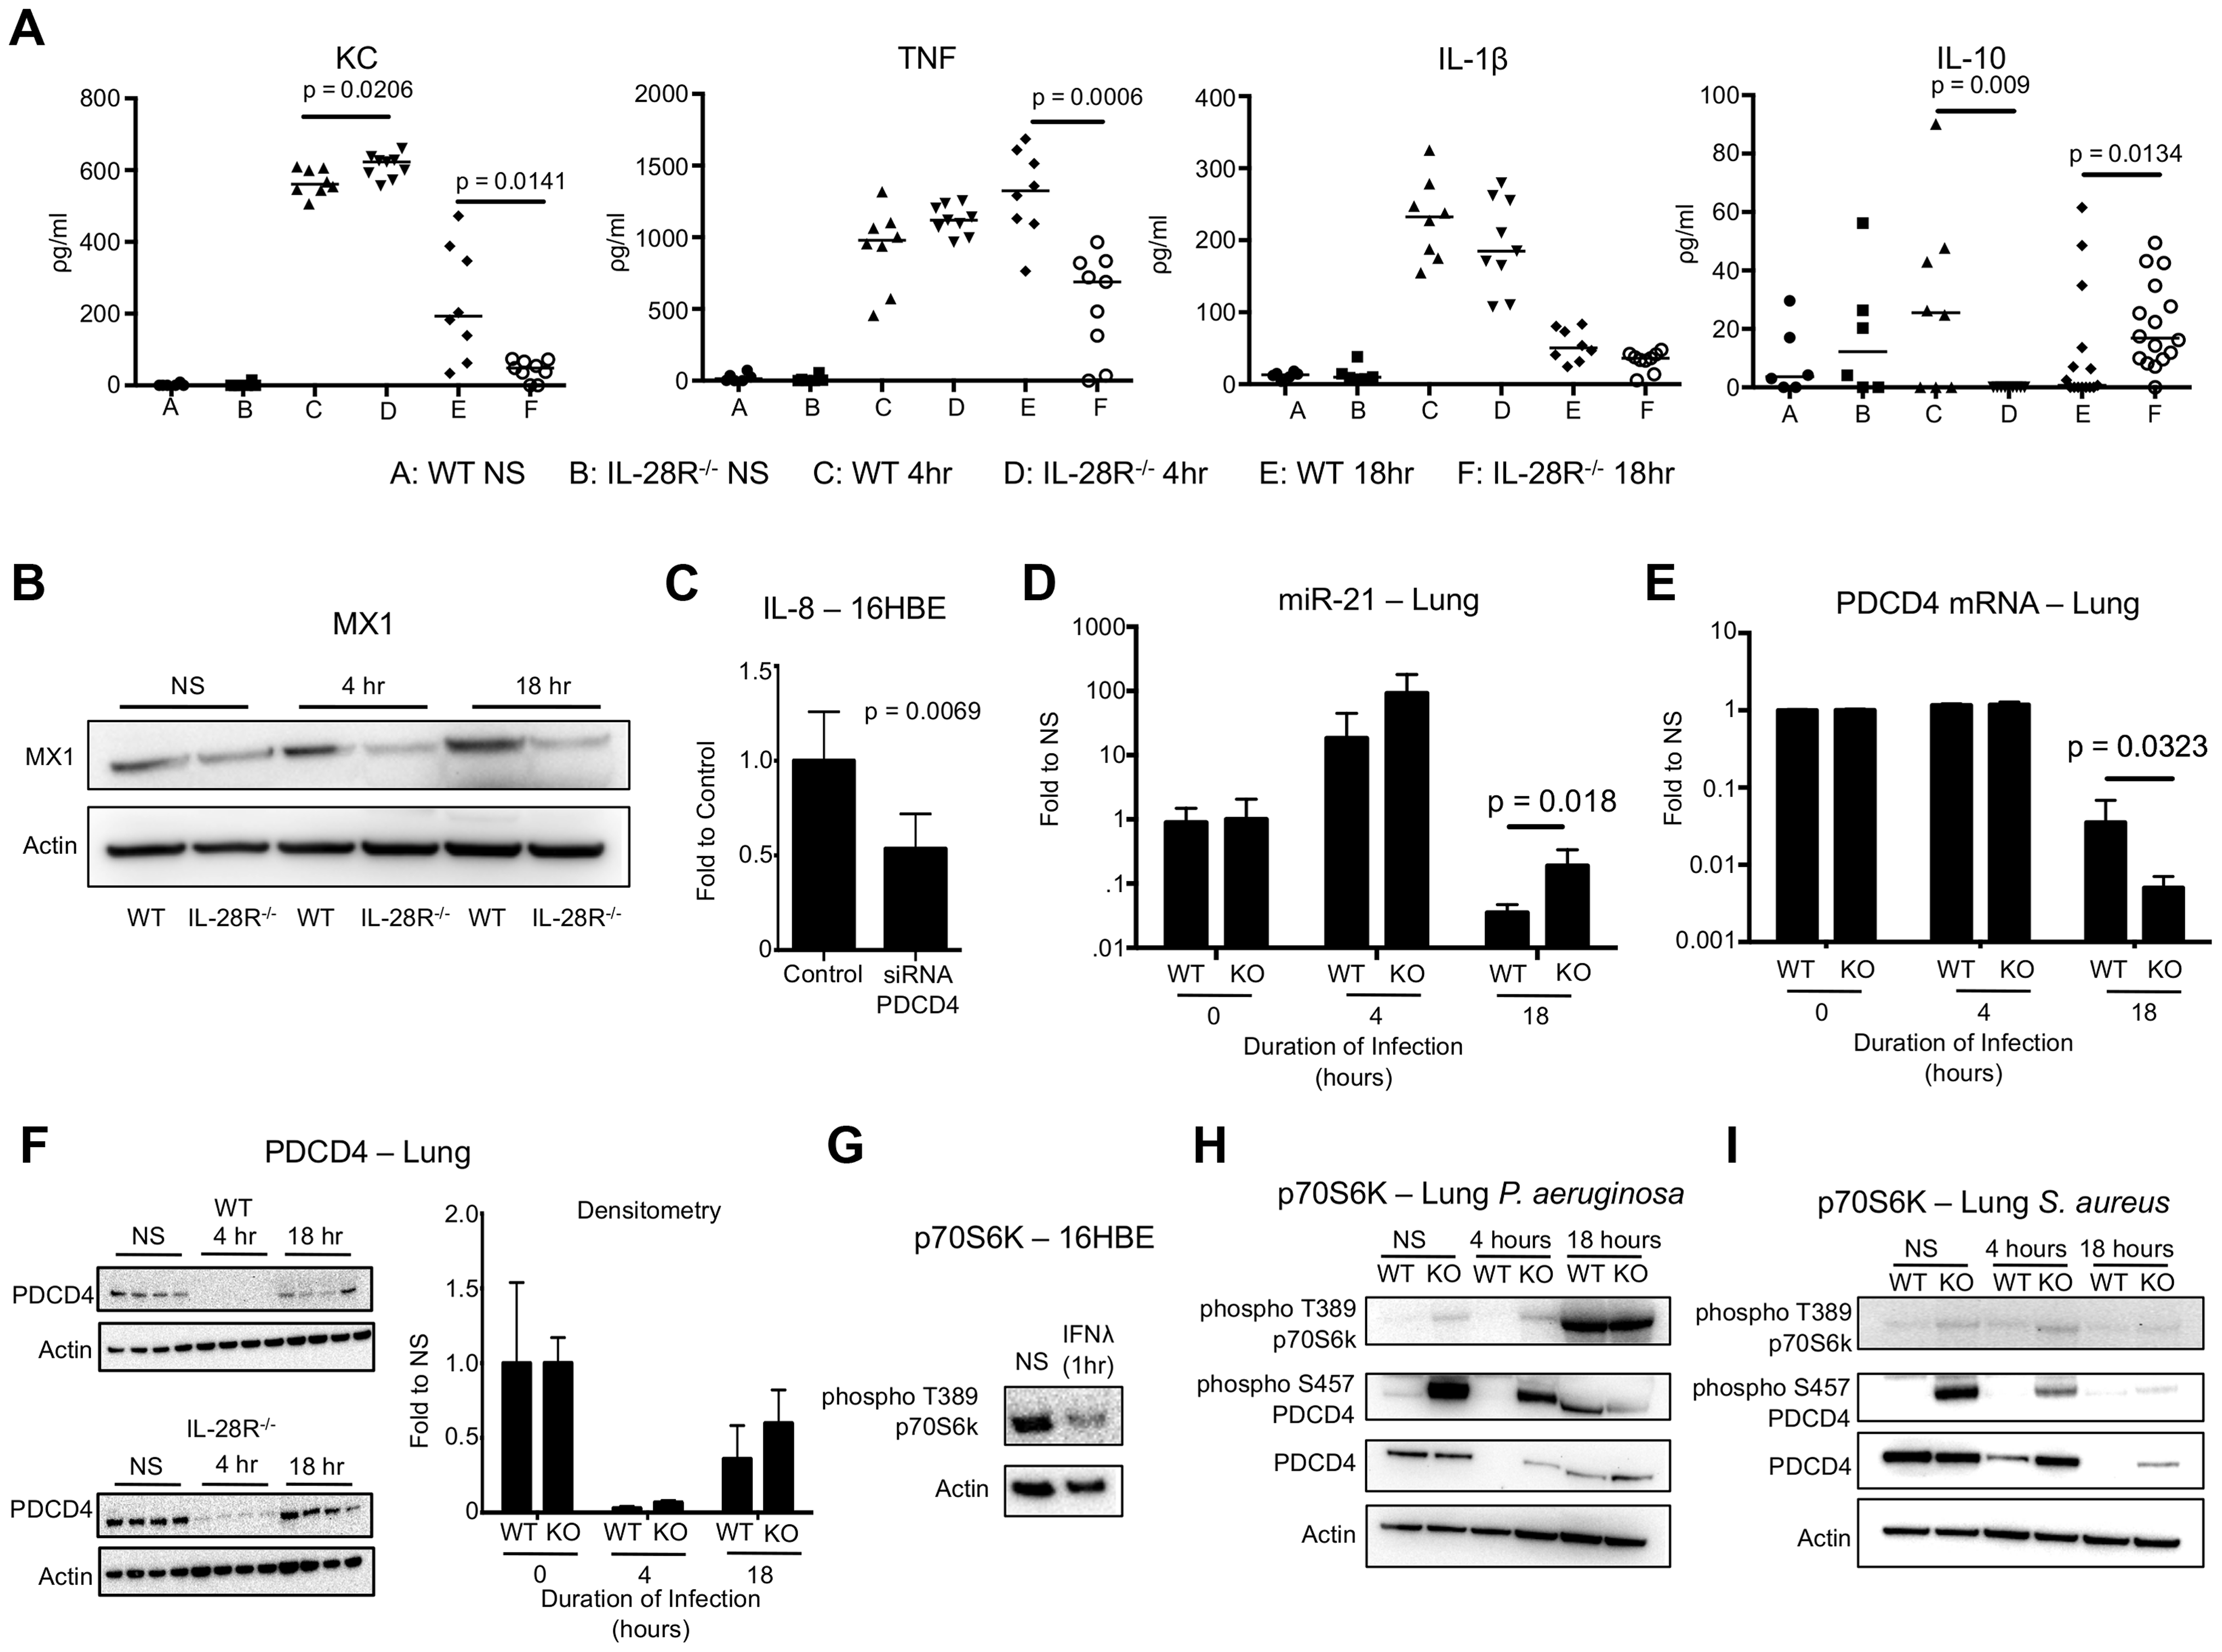 <i>P. aeruginosa</i> induced cytokine, miR-21, and PDCD4 expression in WT and IL-28R<sup>−/−</sup> mice.